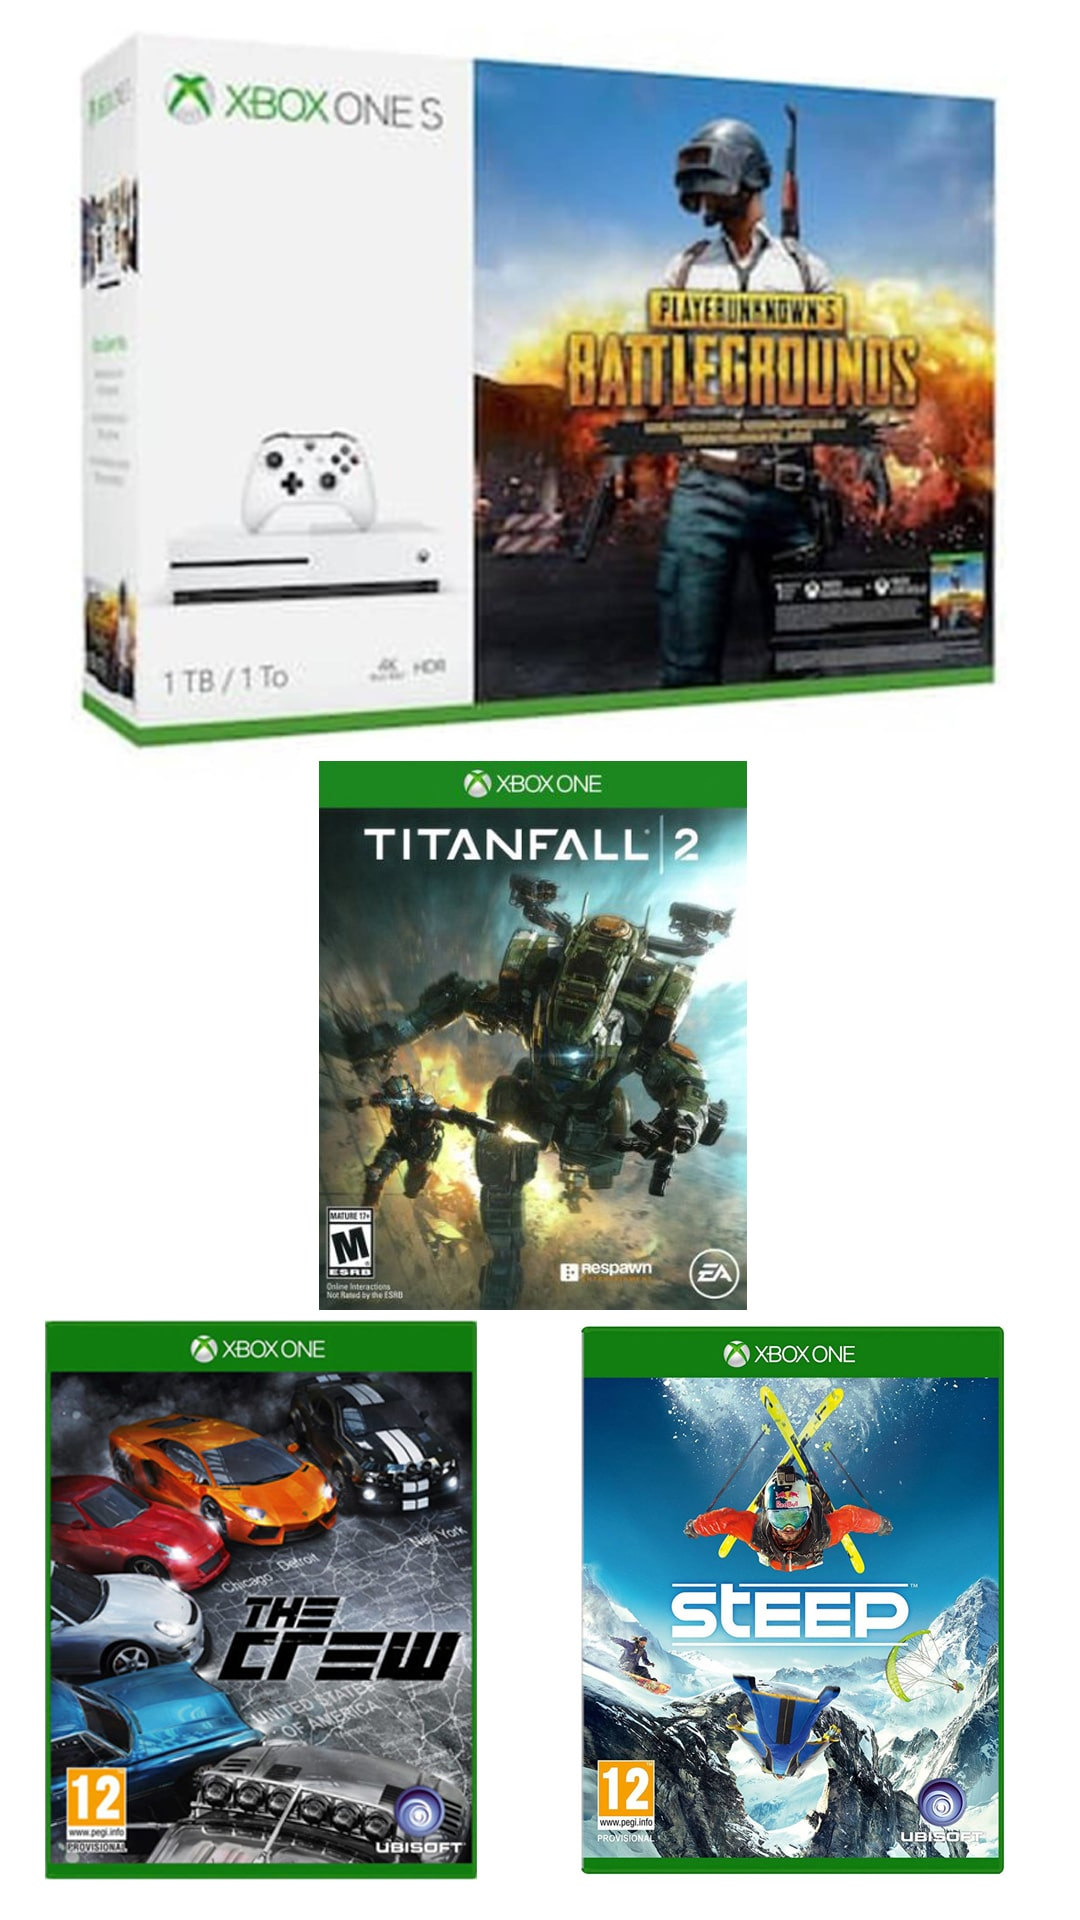 Xbox One S 1TB Console  PLAYERUNKNOWN S BATTLEGROUNDS Bundle With Steep & The Crew (DLC) + Titanfall 2 Xbox One ( CD )